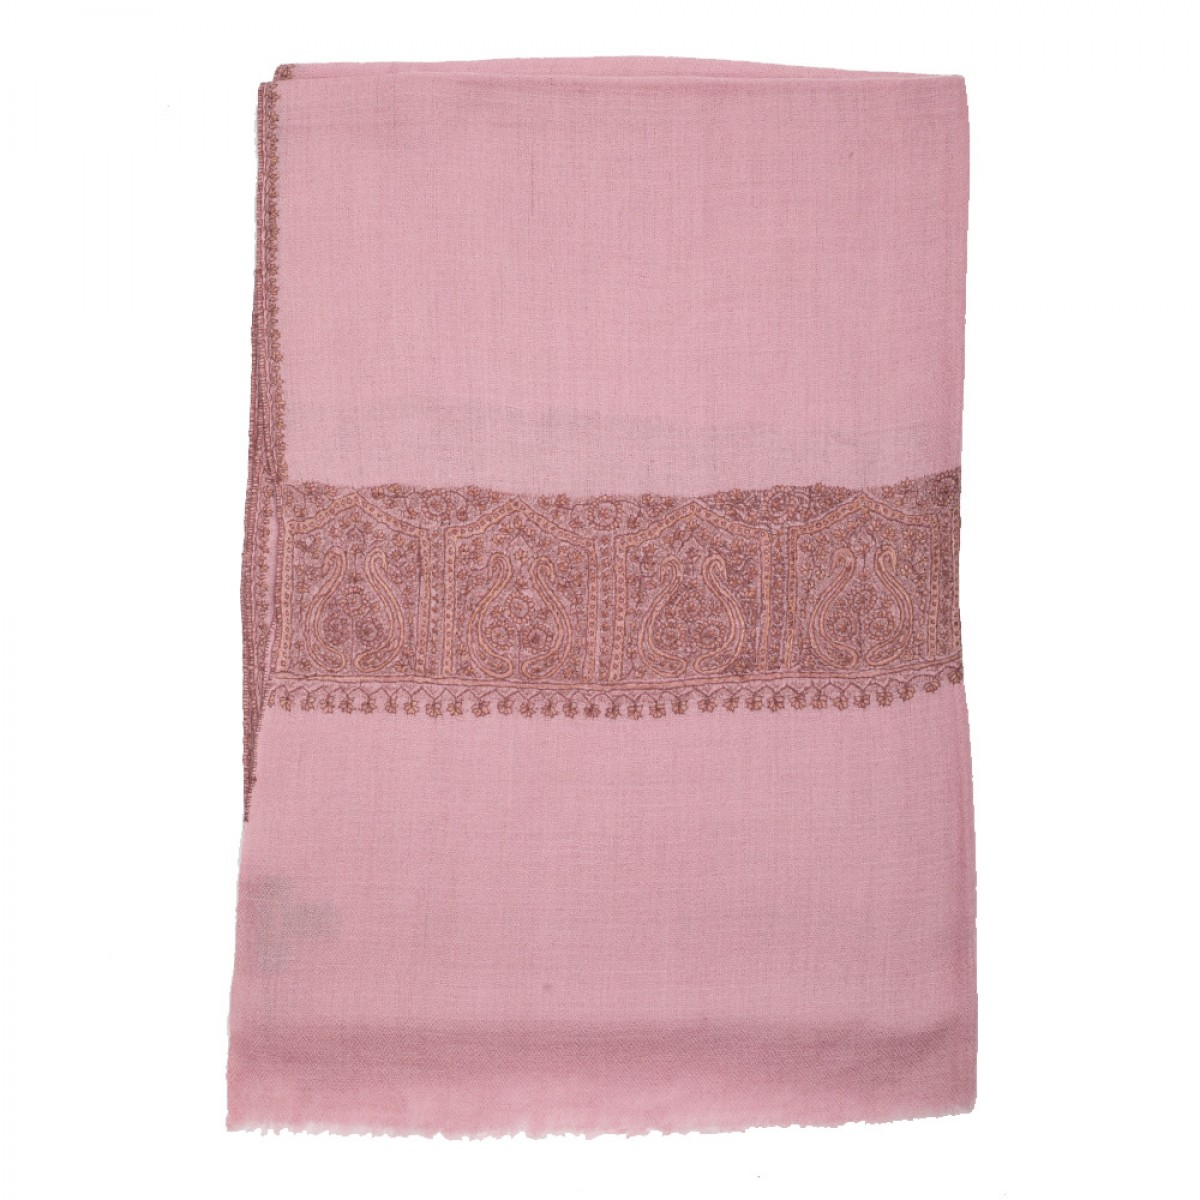 Hand Embroidered Cashmere Pashmina Stole - Peony Pink